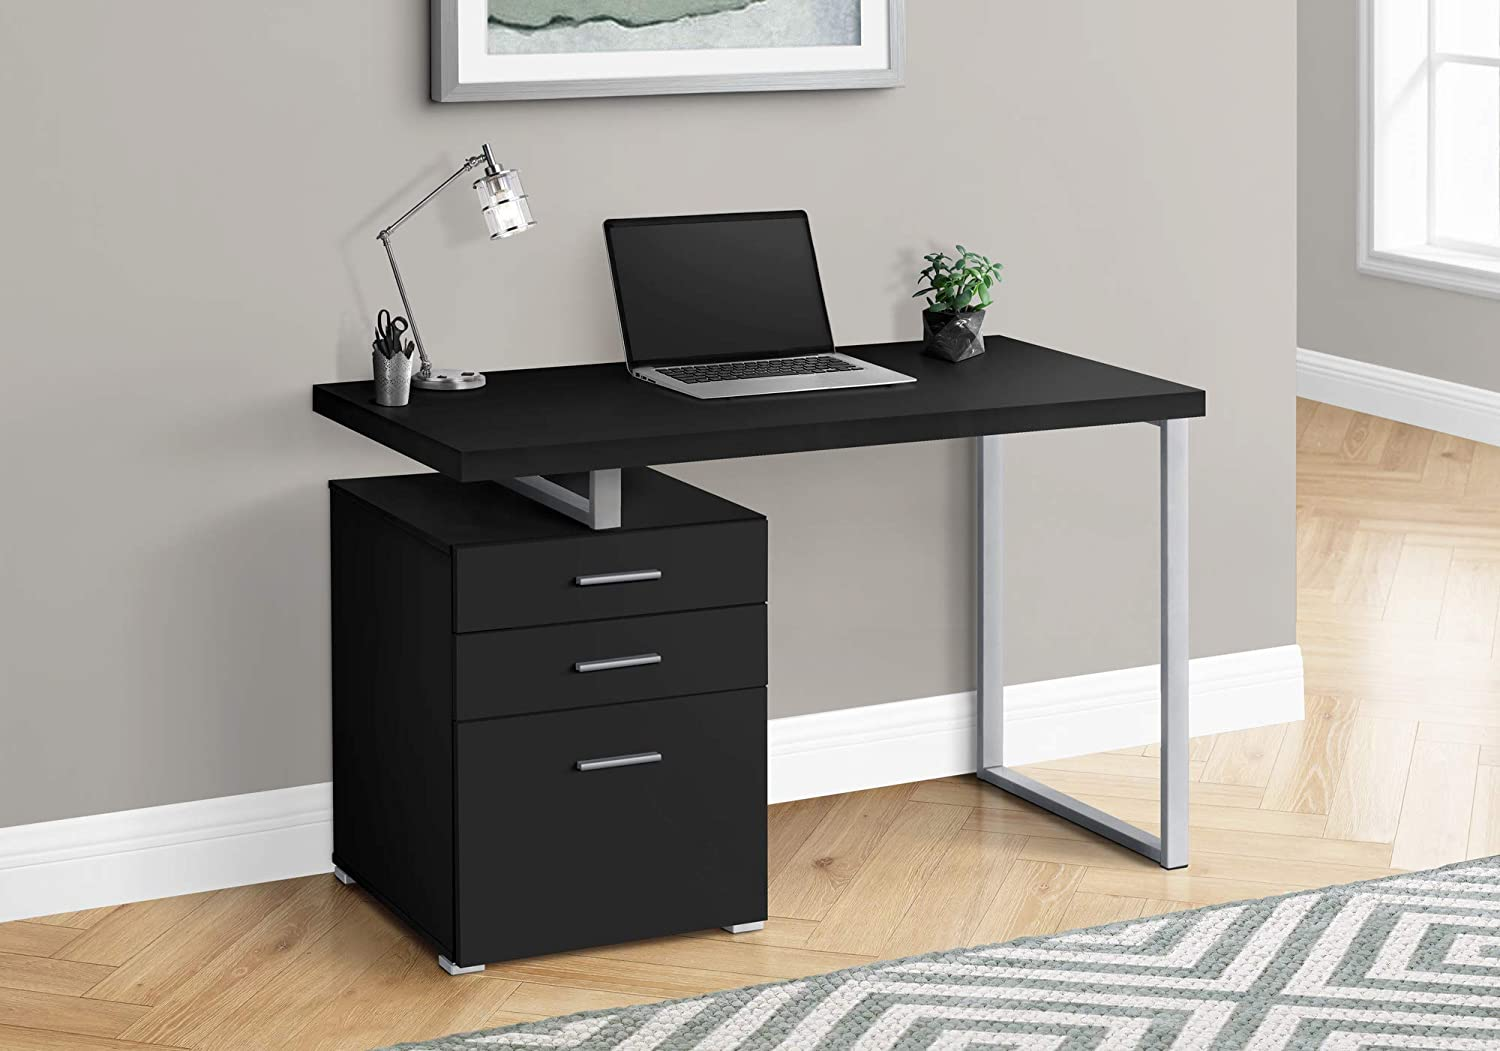 Monarch Max 76% OFF Specialties Laptop Writing Desktop-3 Ranking TOP18 Storage Dr Floating